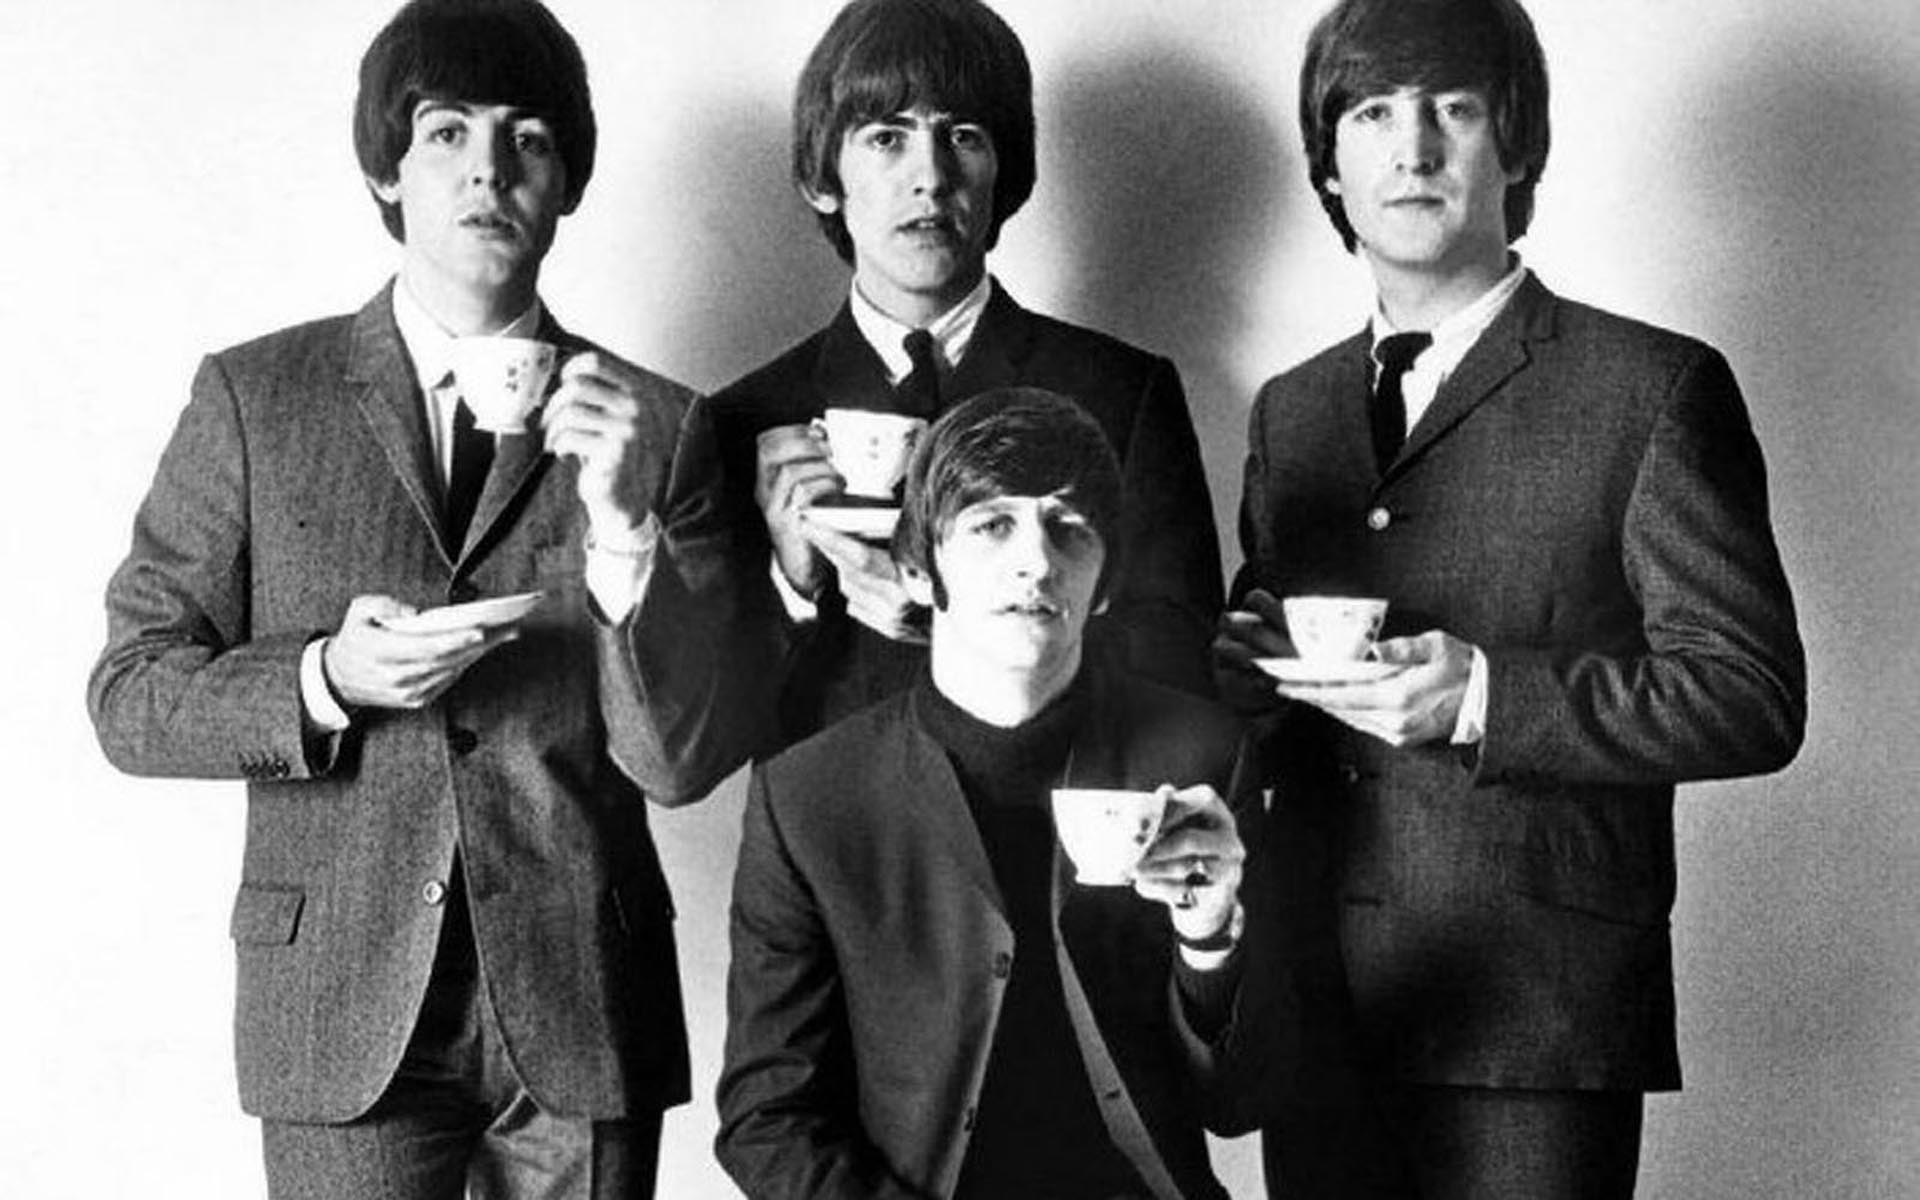 The Beatles Wallpaper Black And White